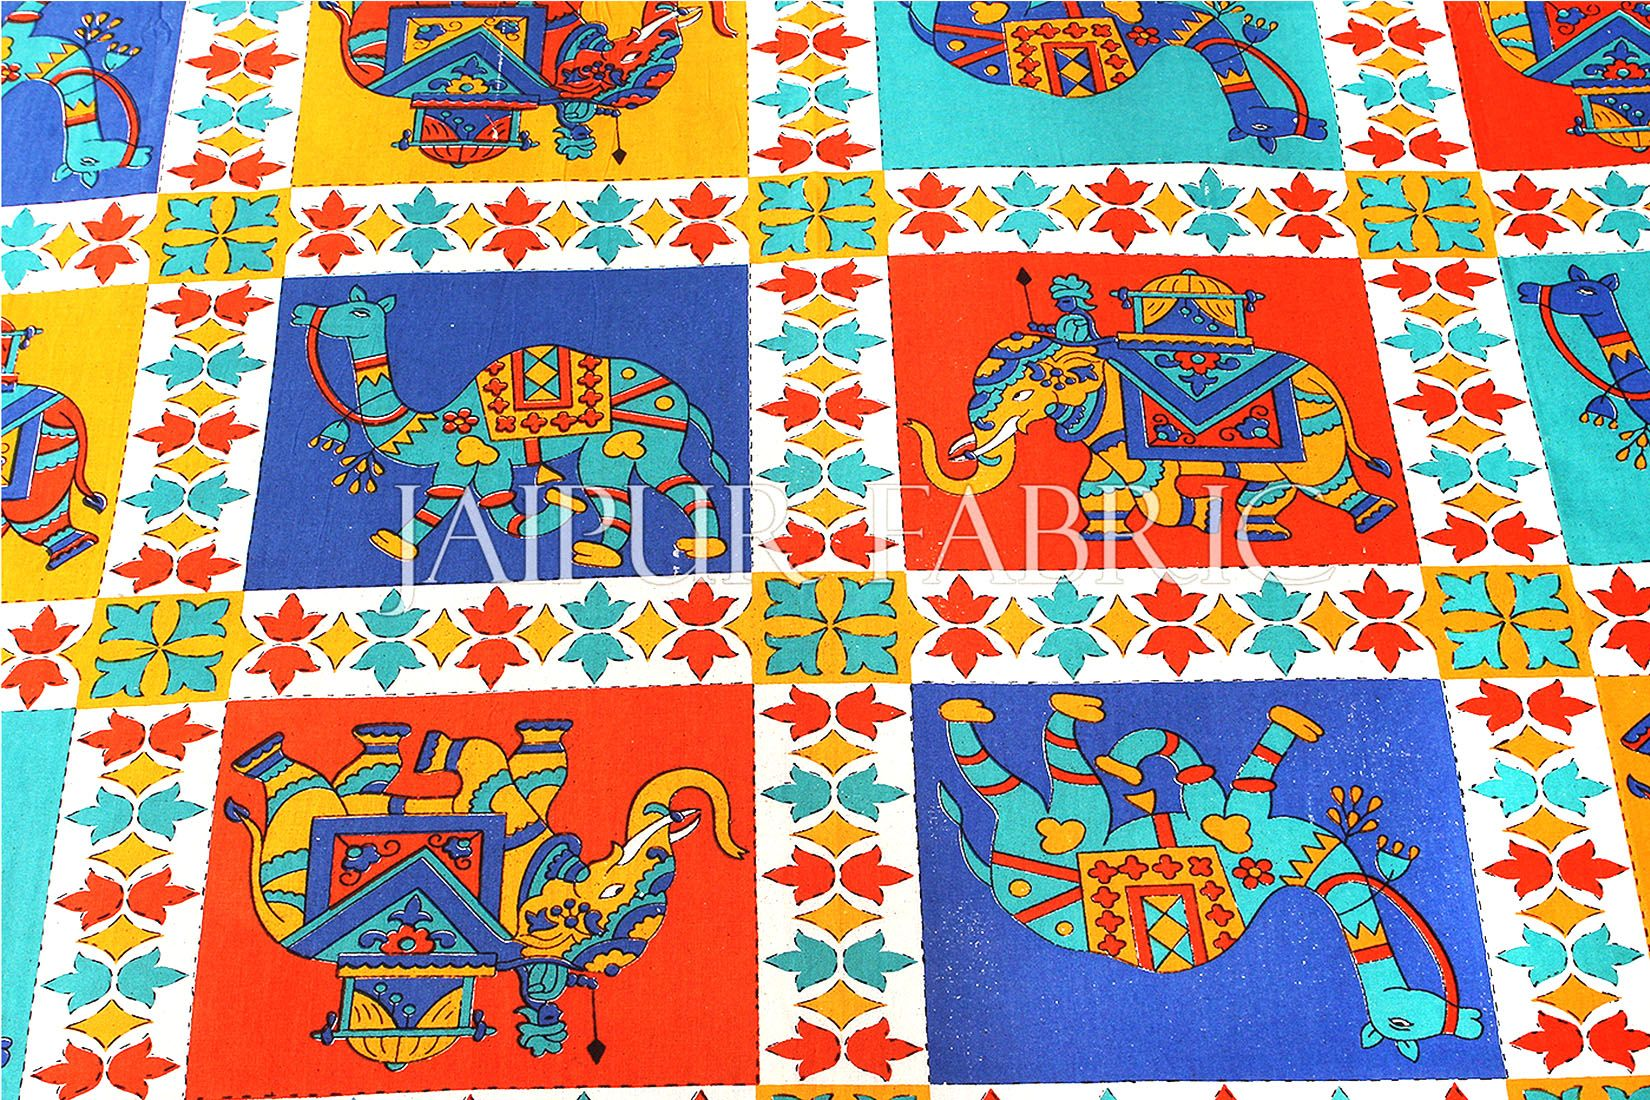 Blue Border Rajasthani Camel and Elephant block print Single Bed sheets